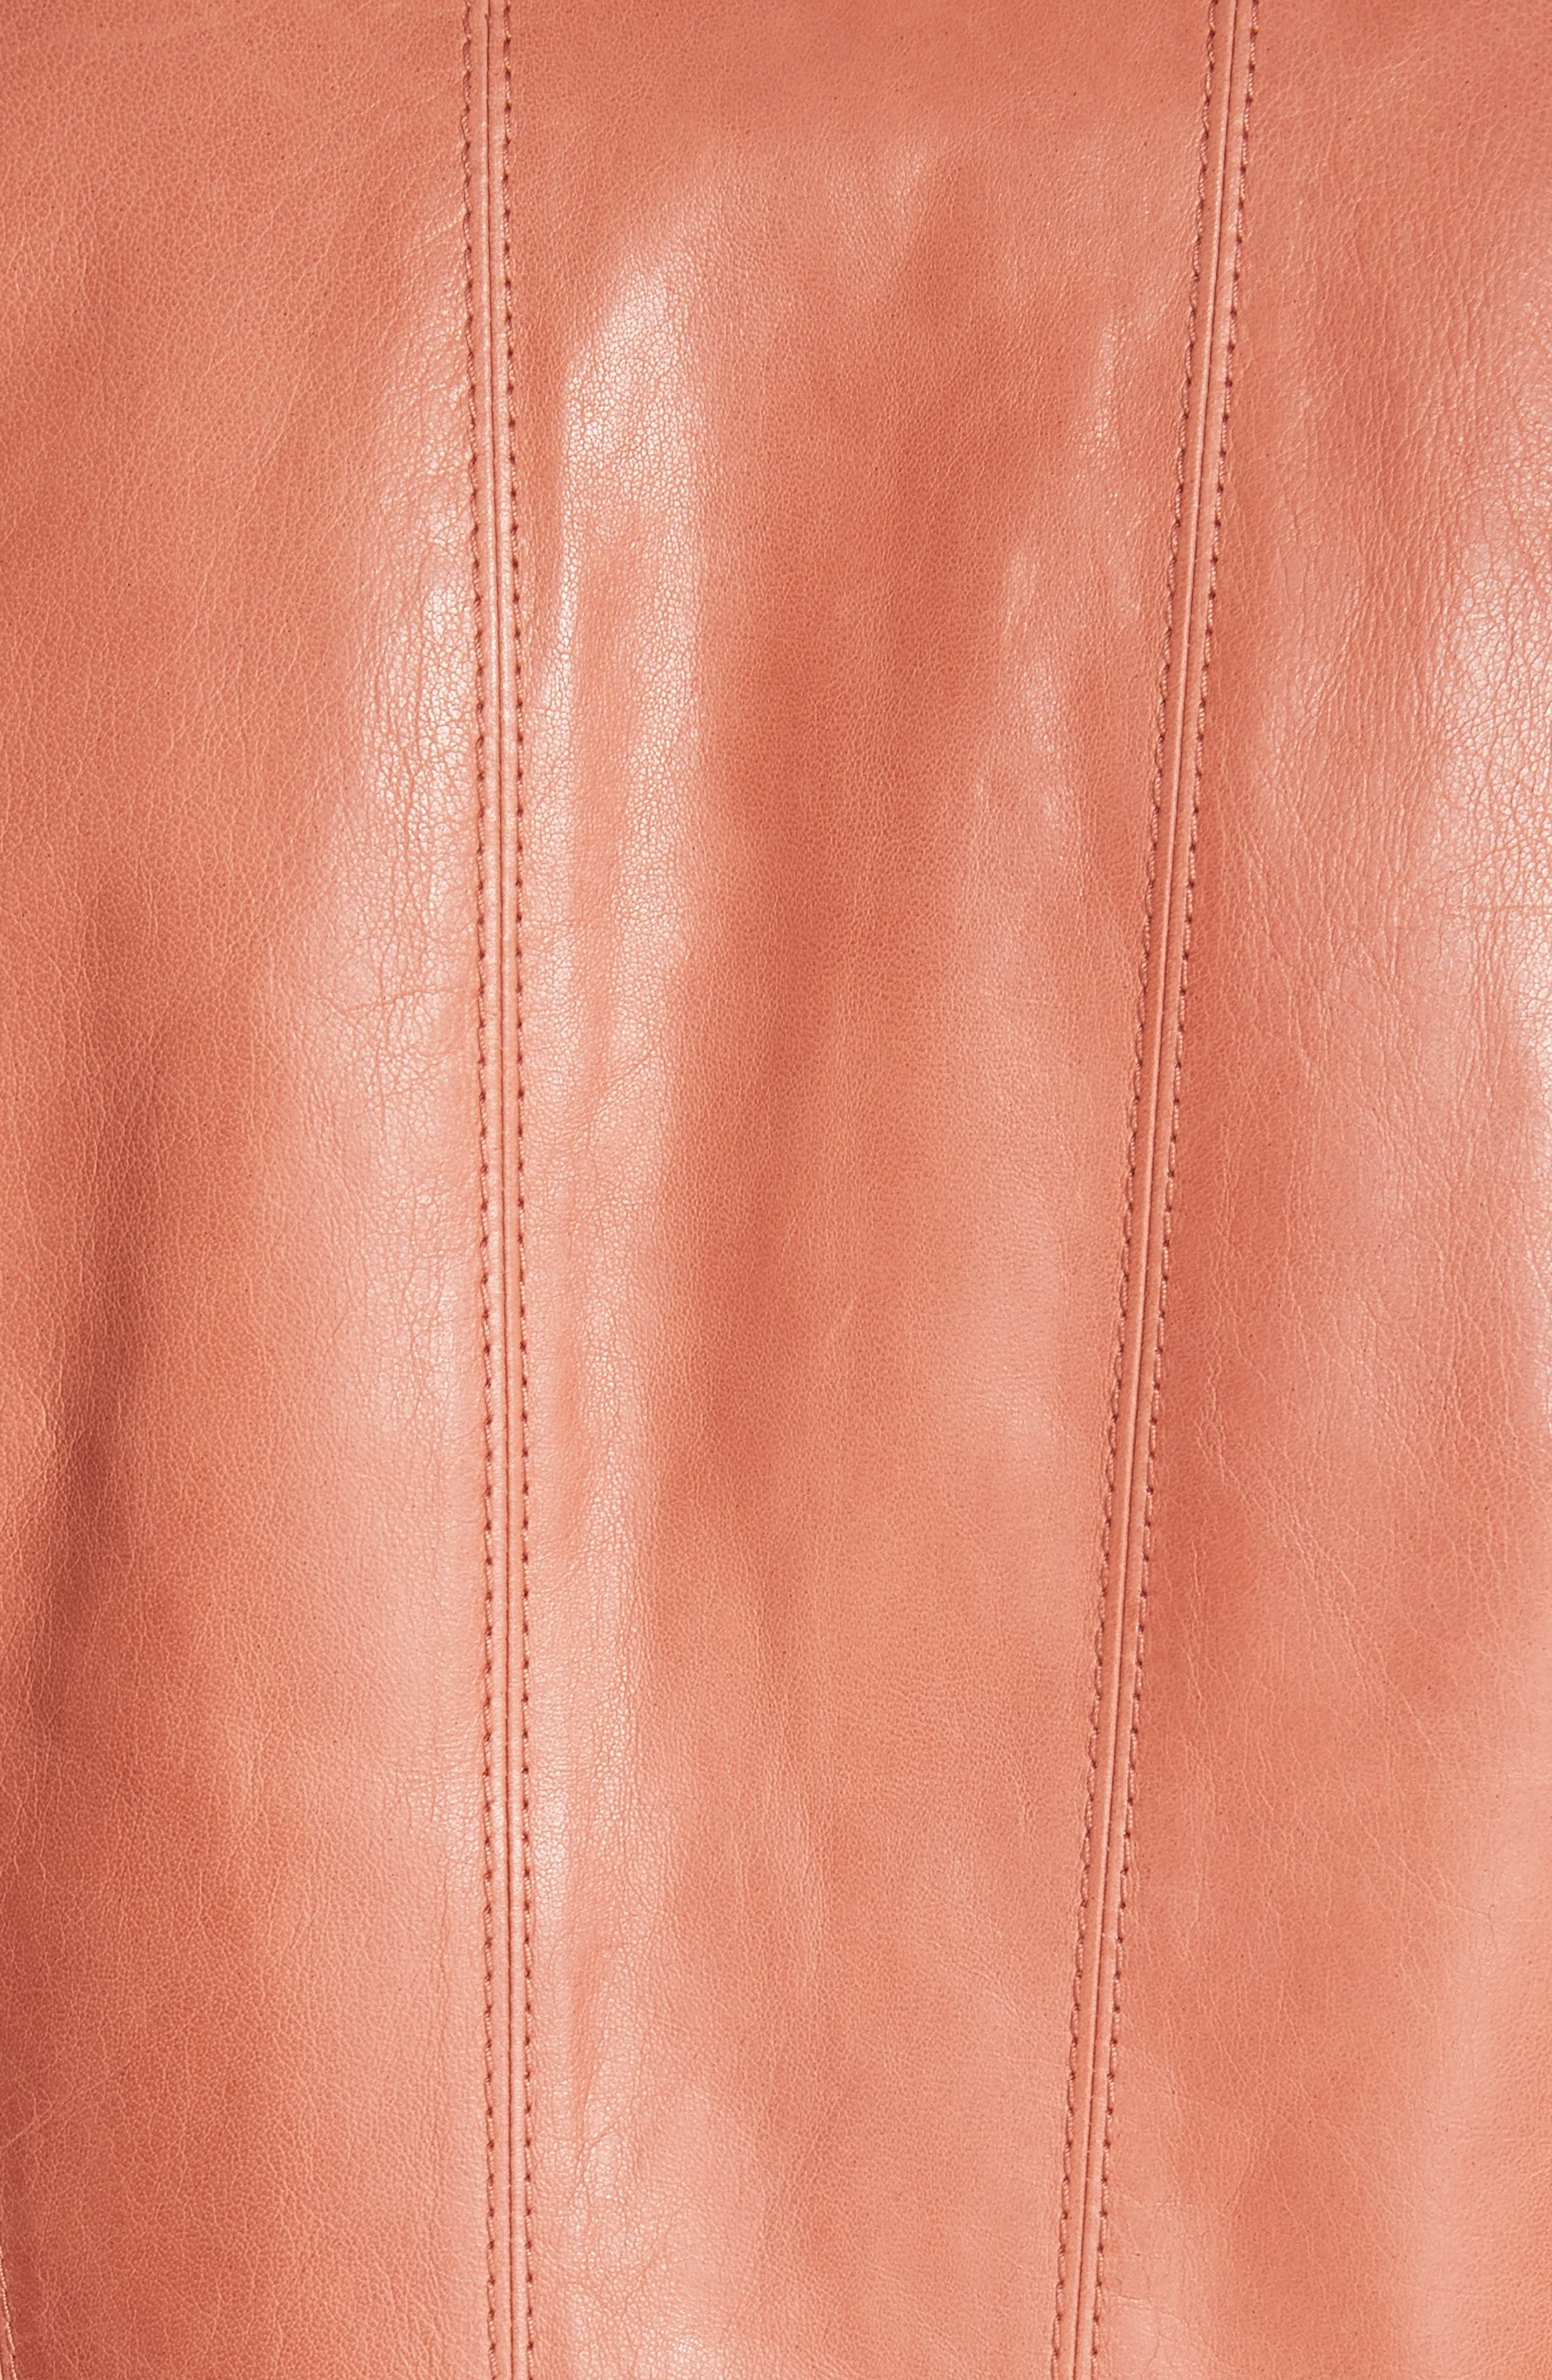 Courtney Glazed Lambskin Leather Jacket,                             Alternate thumbnail 6, color,                             802